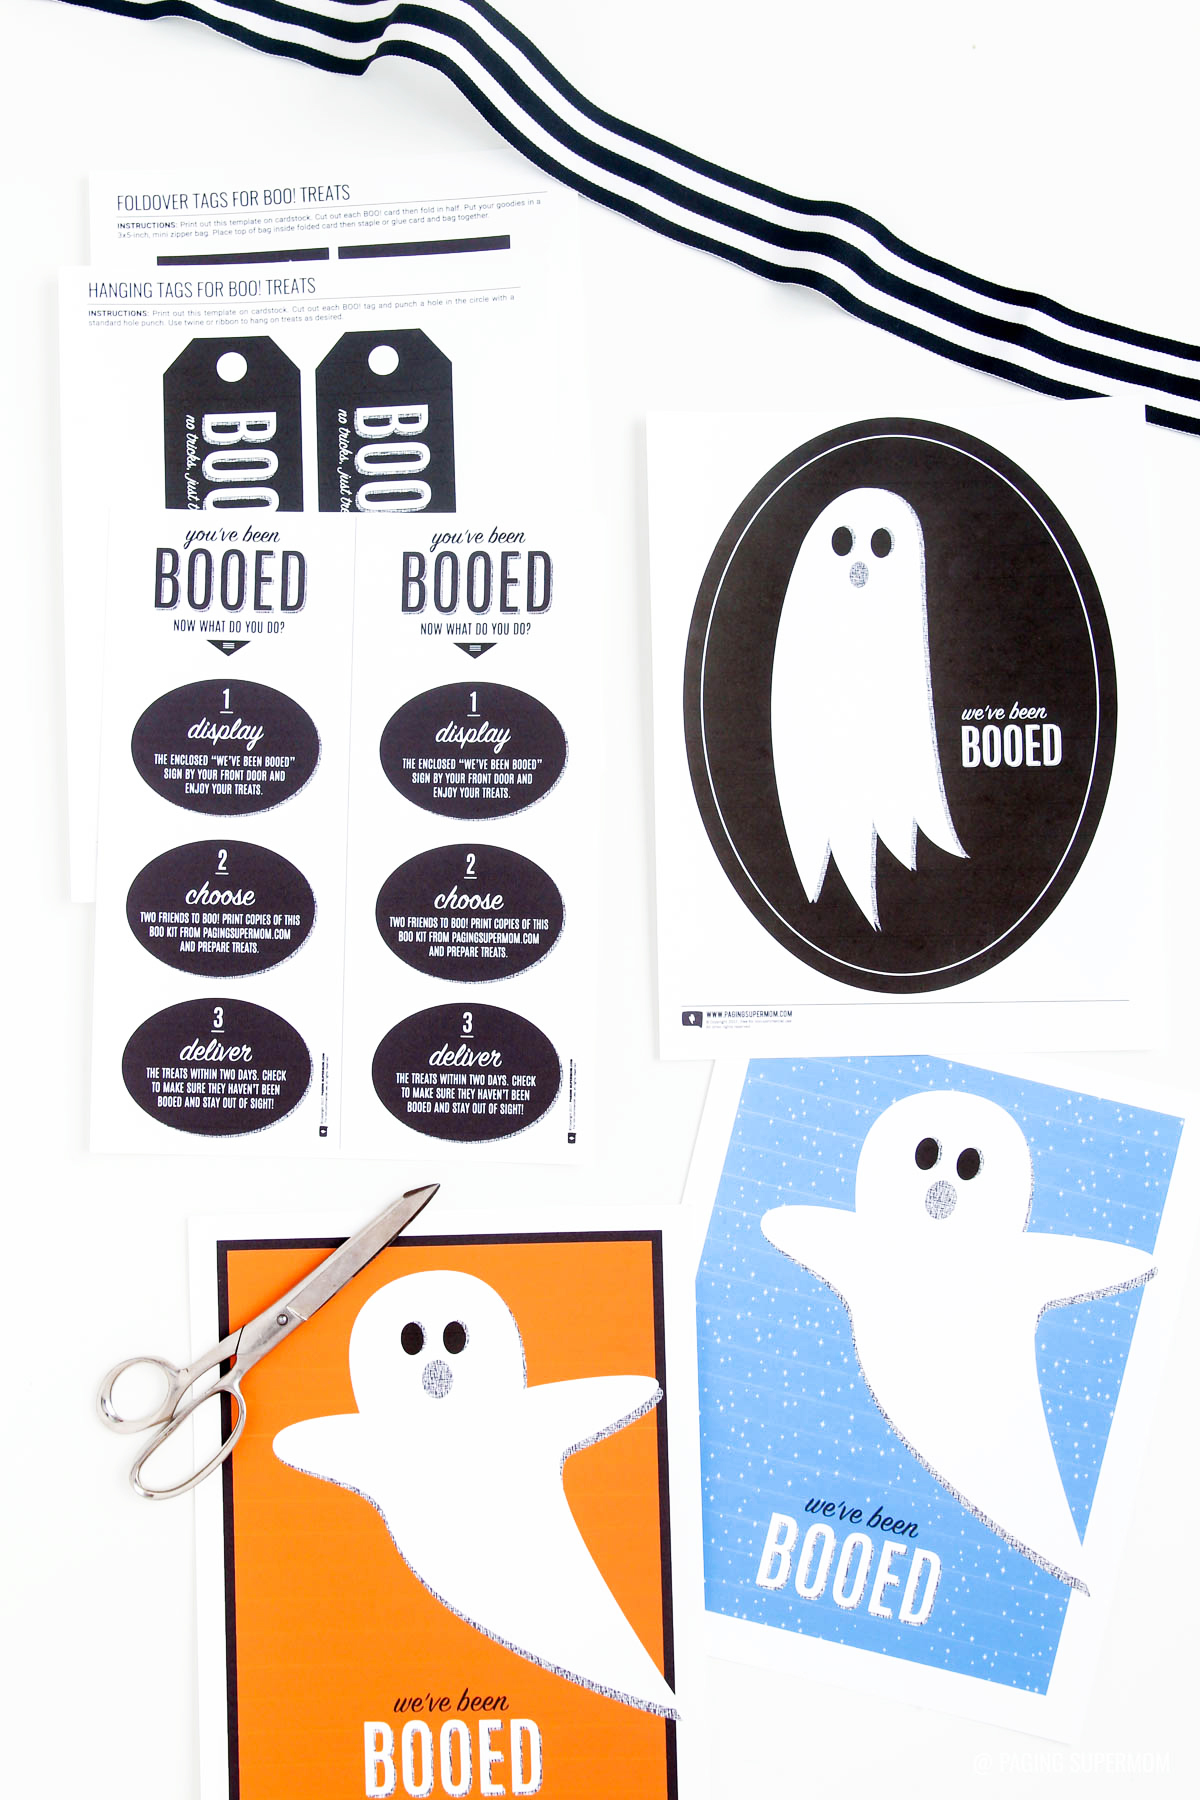 You've Been Booed - FREE PRINTABLE Neighborhood Booing Kit for Halloween from @PagingSupermom